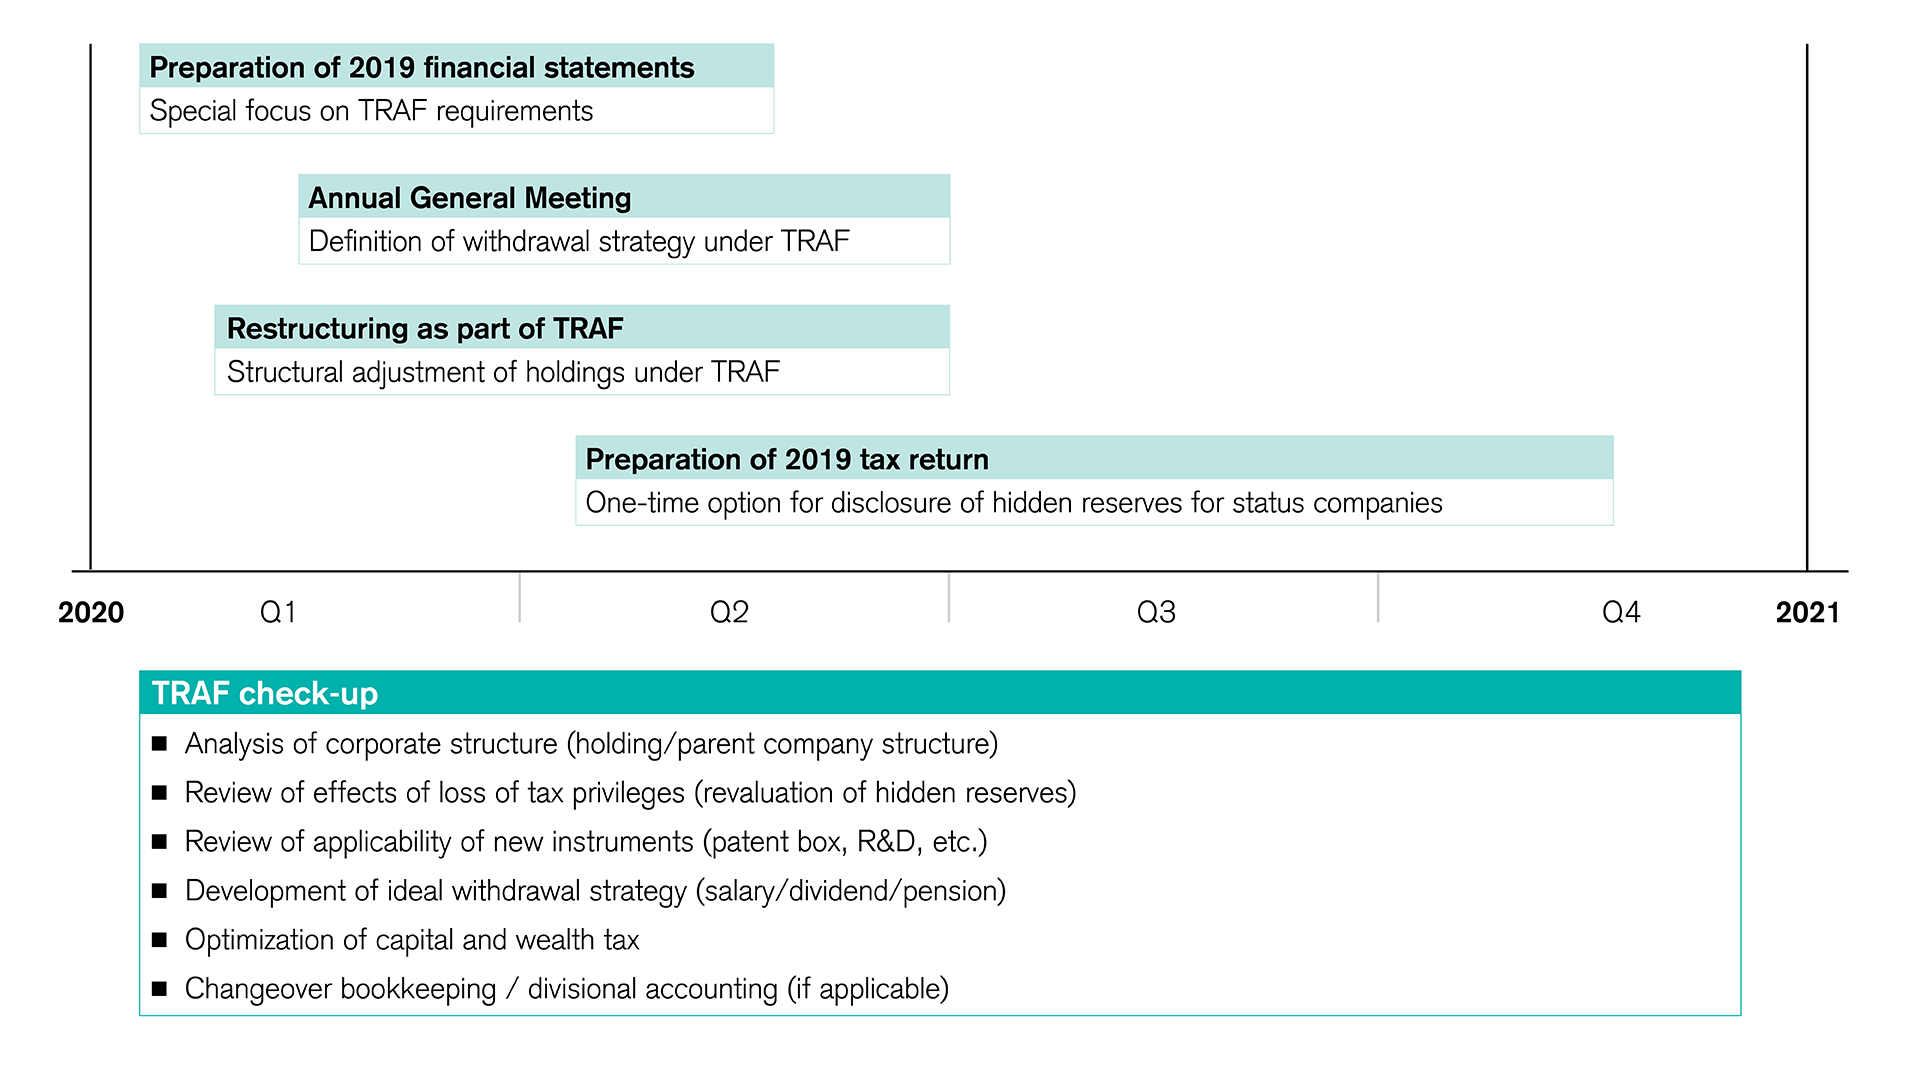 TRAF milestones for companies in 2020